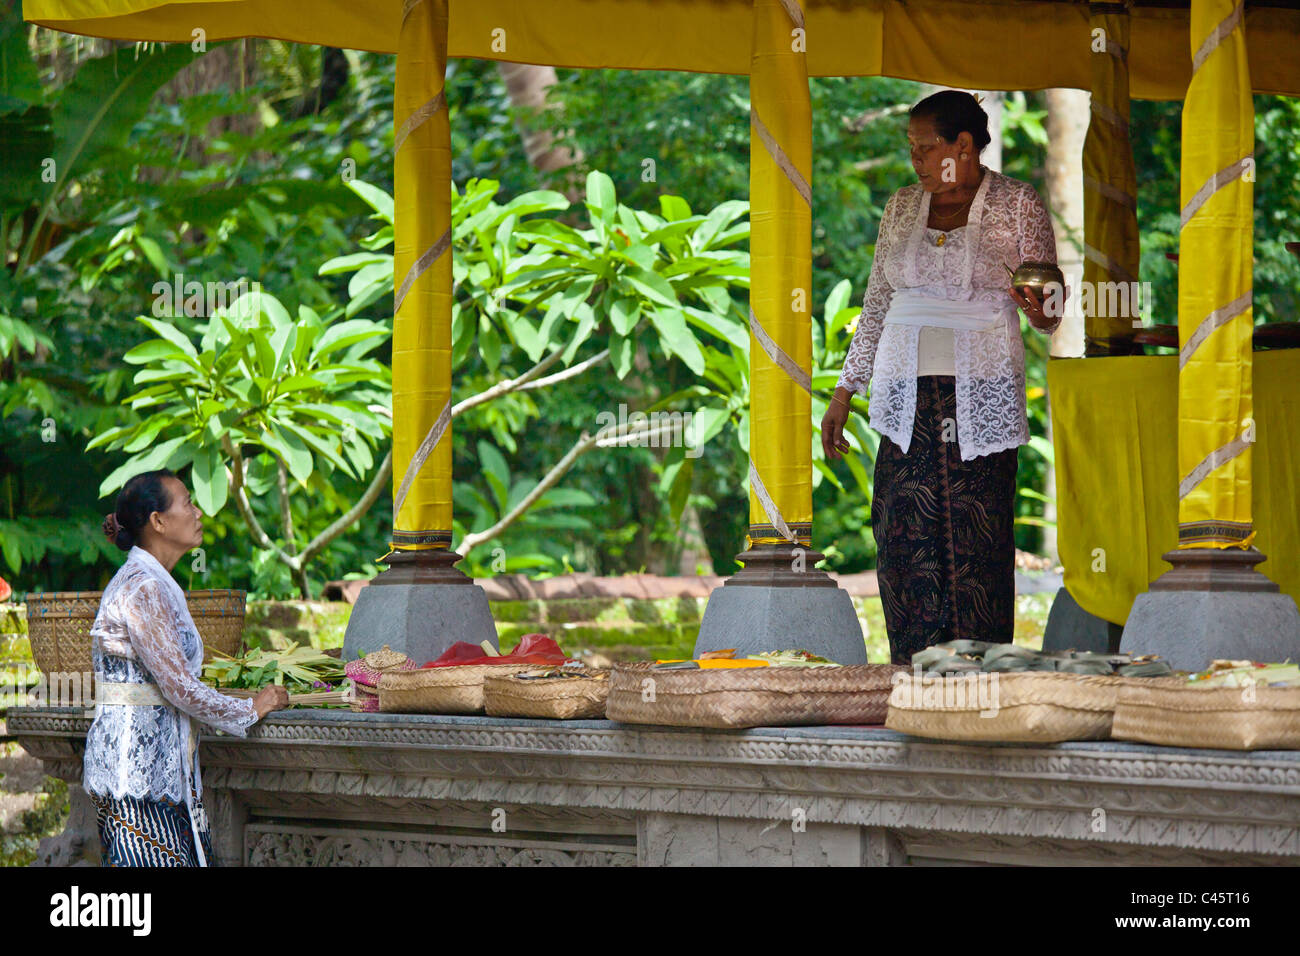 Women bring offerings at PURA TAMAN SARASWATI during the GALUNGAN FESTIVAL - UBUD, BALI, INDONESIA - Stock Image